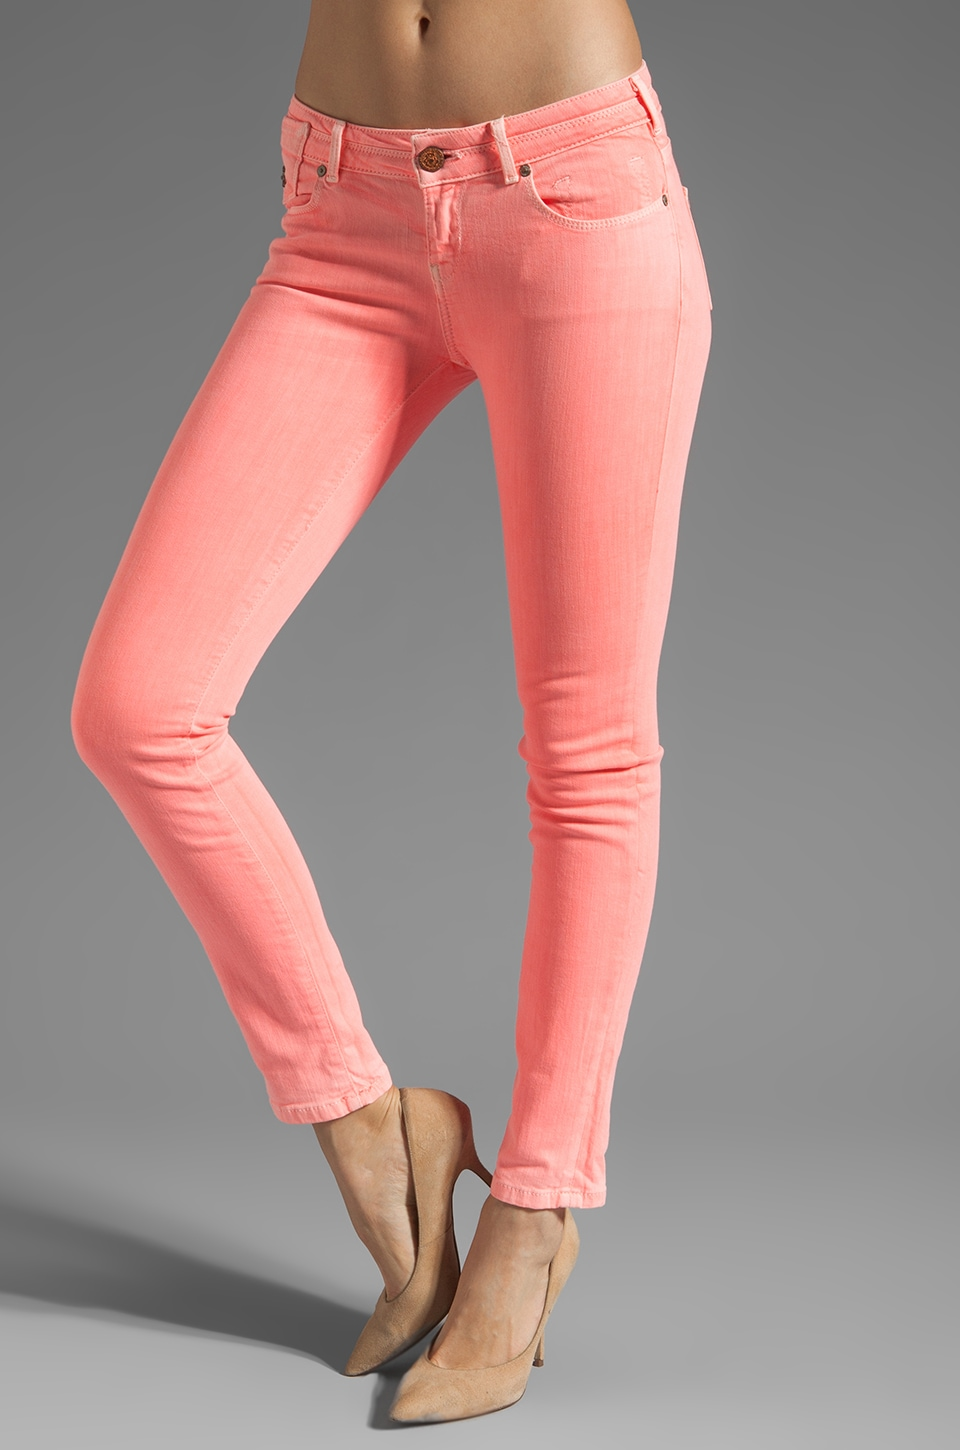 Maison Scotch Parisienne Skinny Jean in Hot Pink